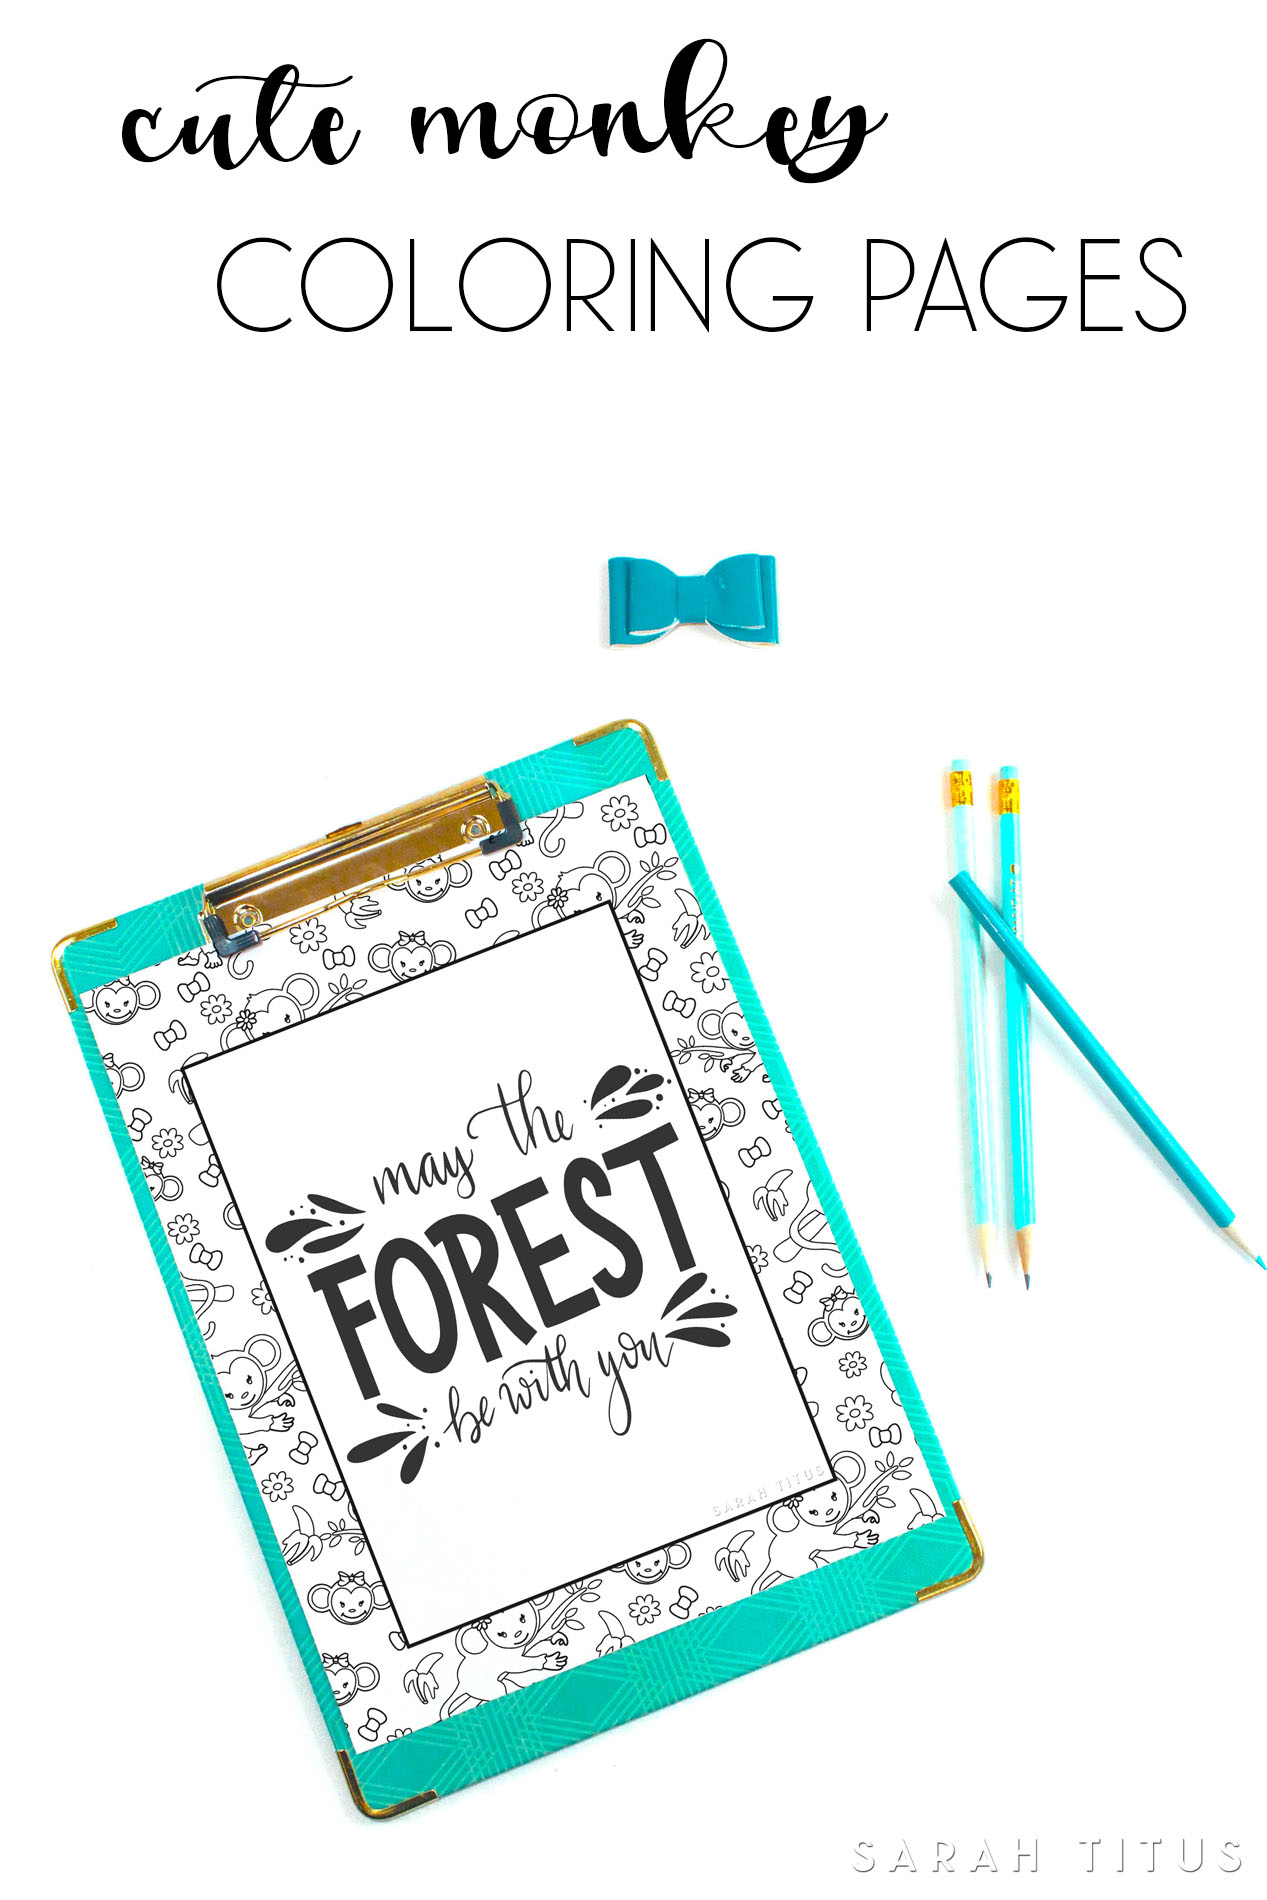 Cute Monkey Coloring Pages Sarah Titus From Homeless To 8 Figures